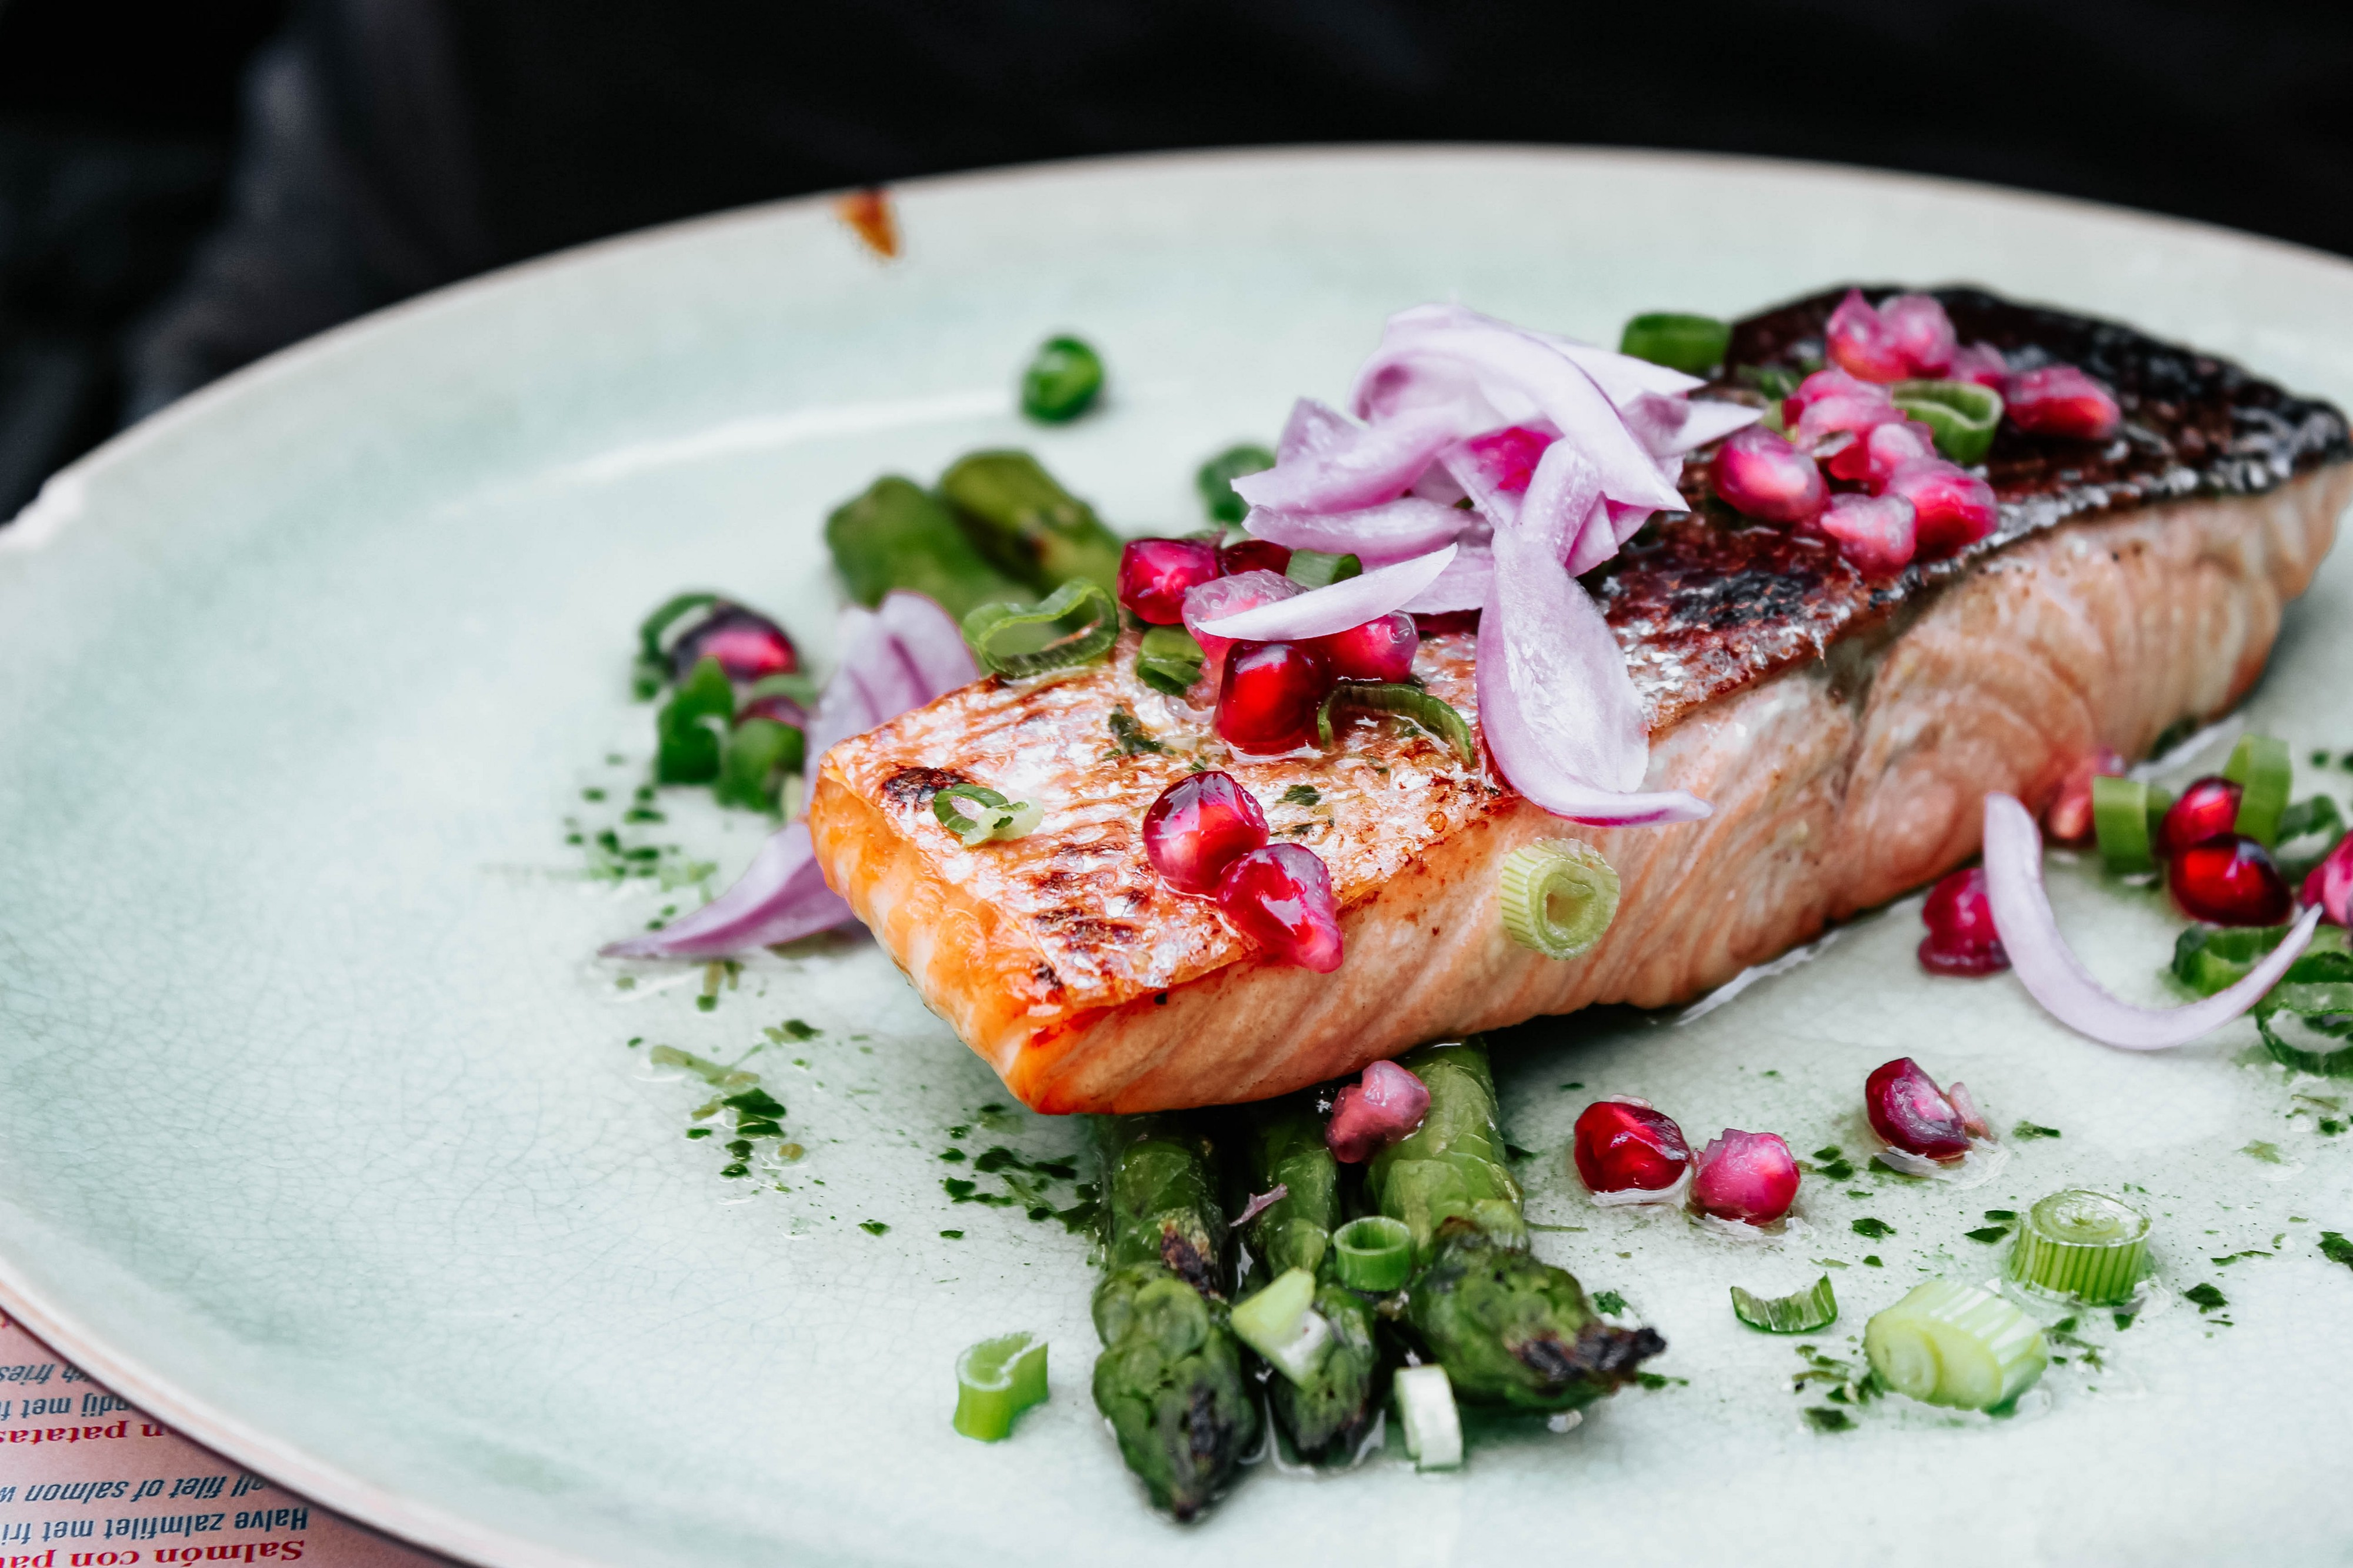 Tasty salmon with onions and vegetables